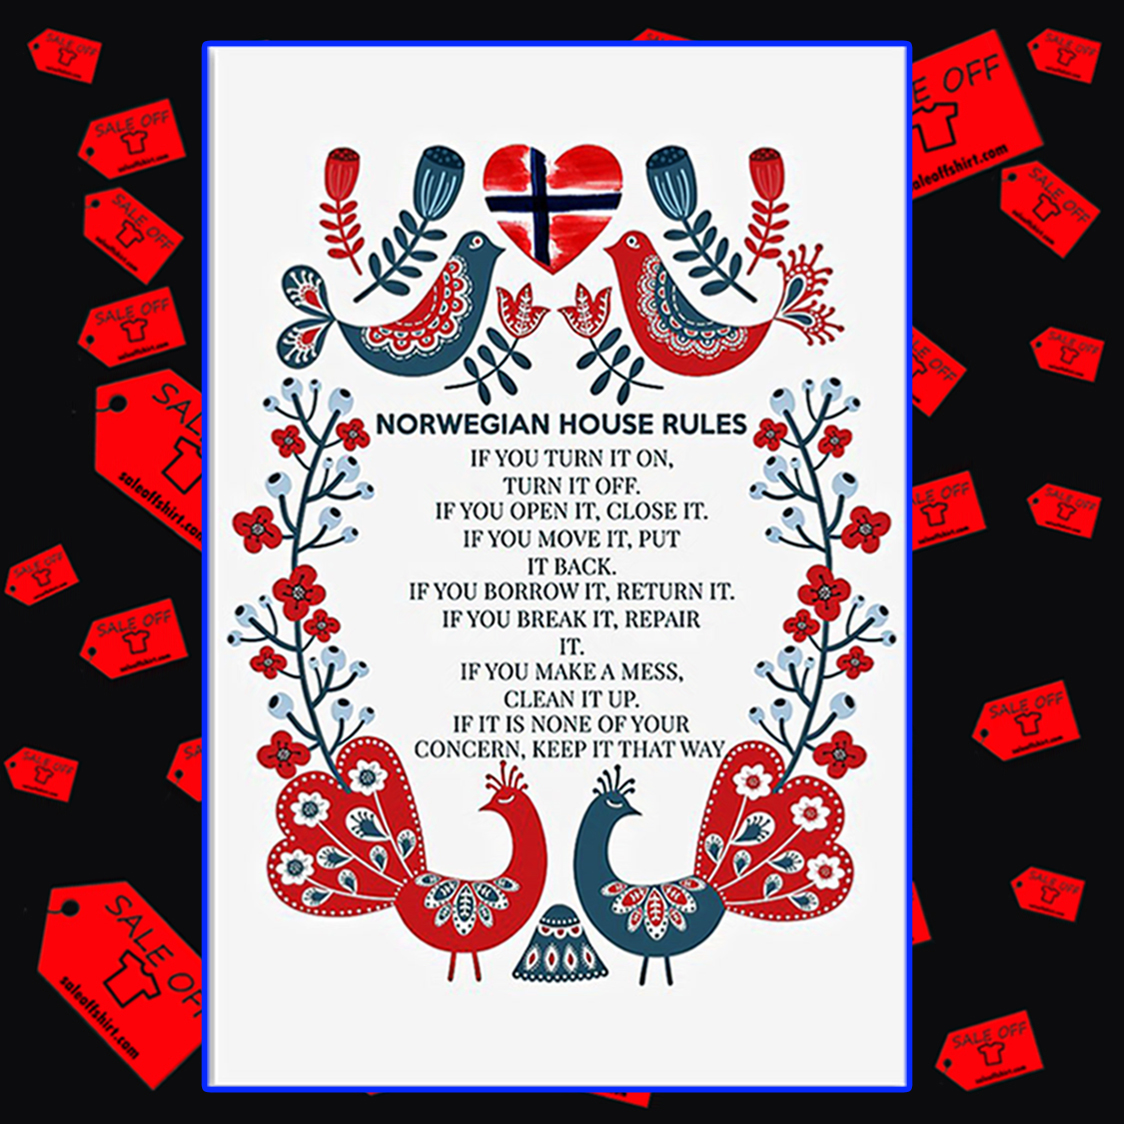 Norwegian house rules if you turn it on poster 16x24